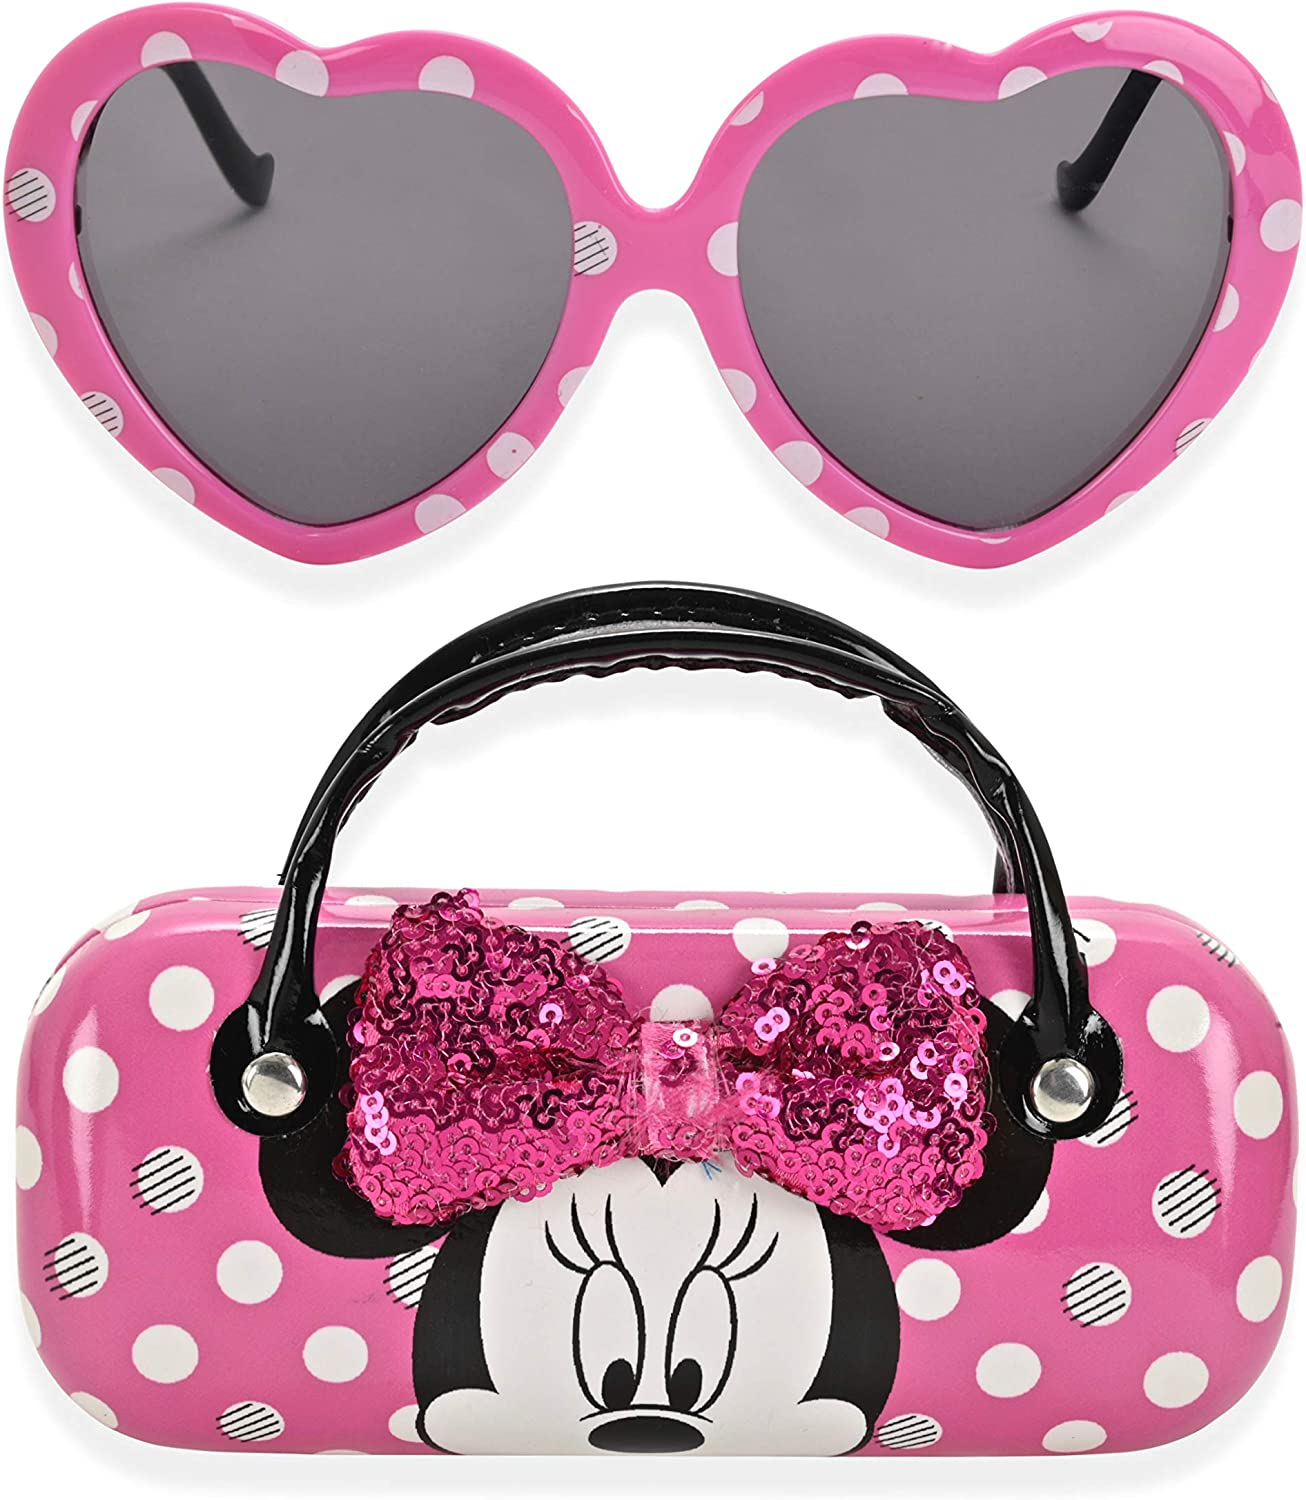 Minnie Mouse Kids Sunglasses for Girls, Toddler Sunglasses with Kids...